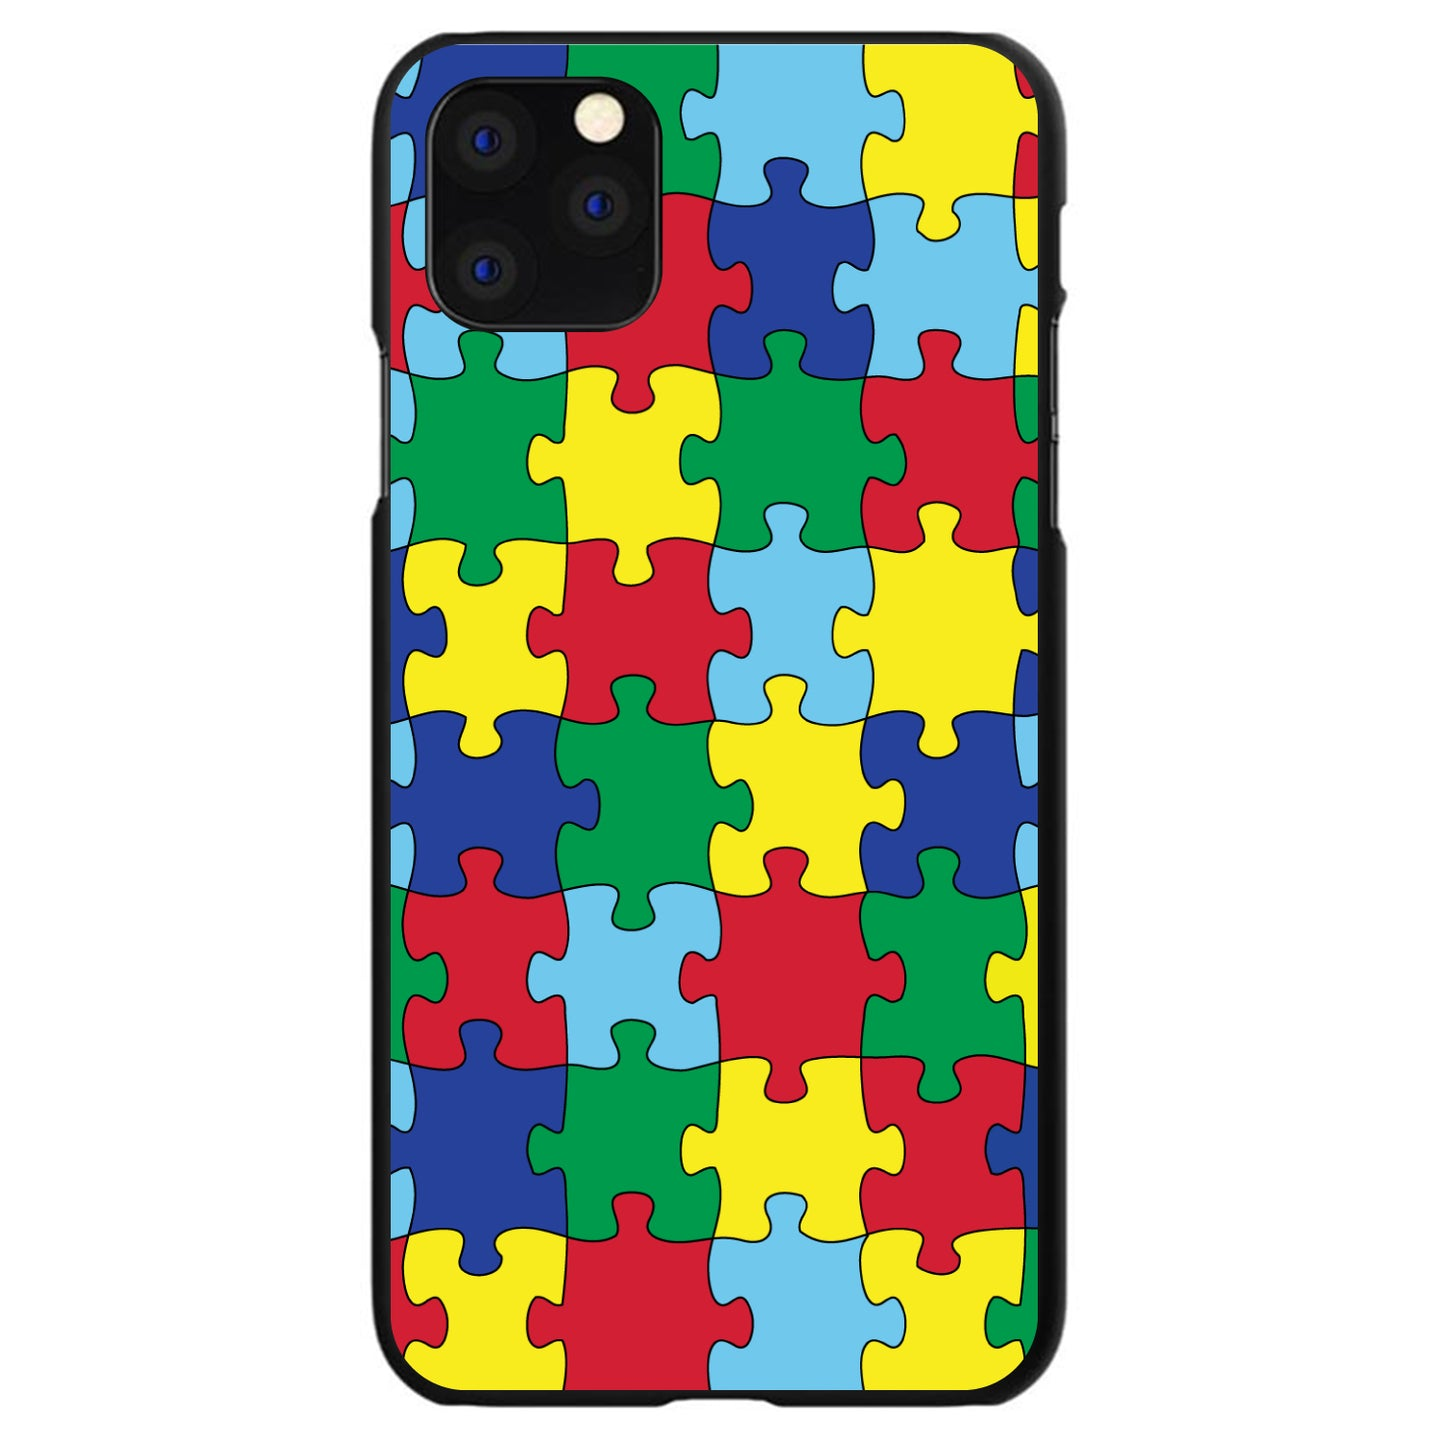 DistinctInk® Hard Plastic Snap-On Case for Apple iPhone - Primary Color Puzzle Pieces Autism